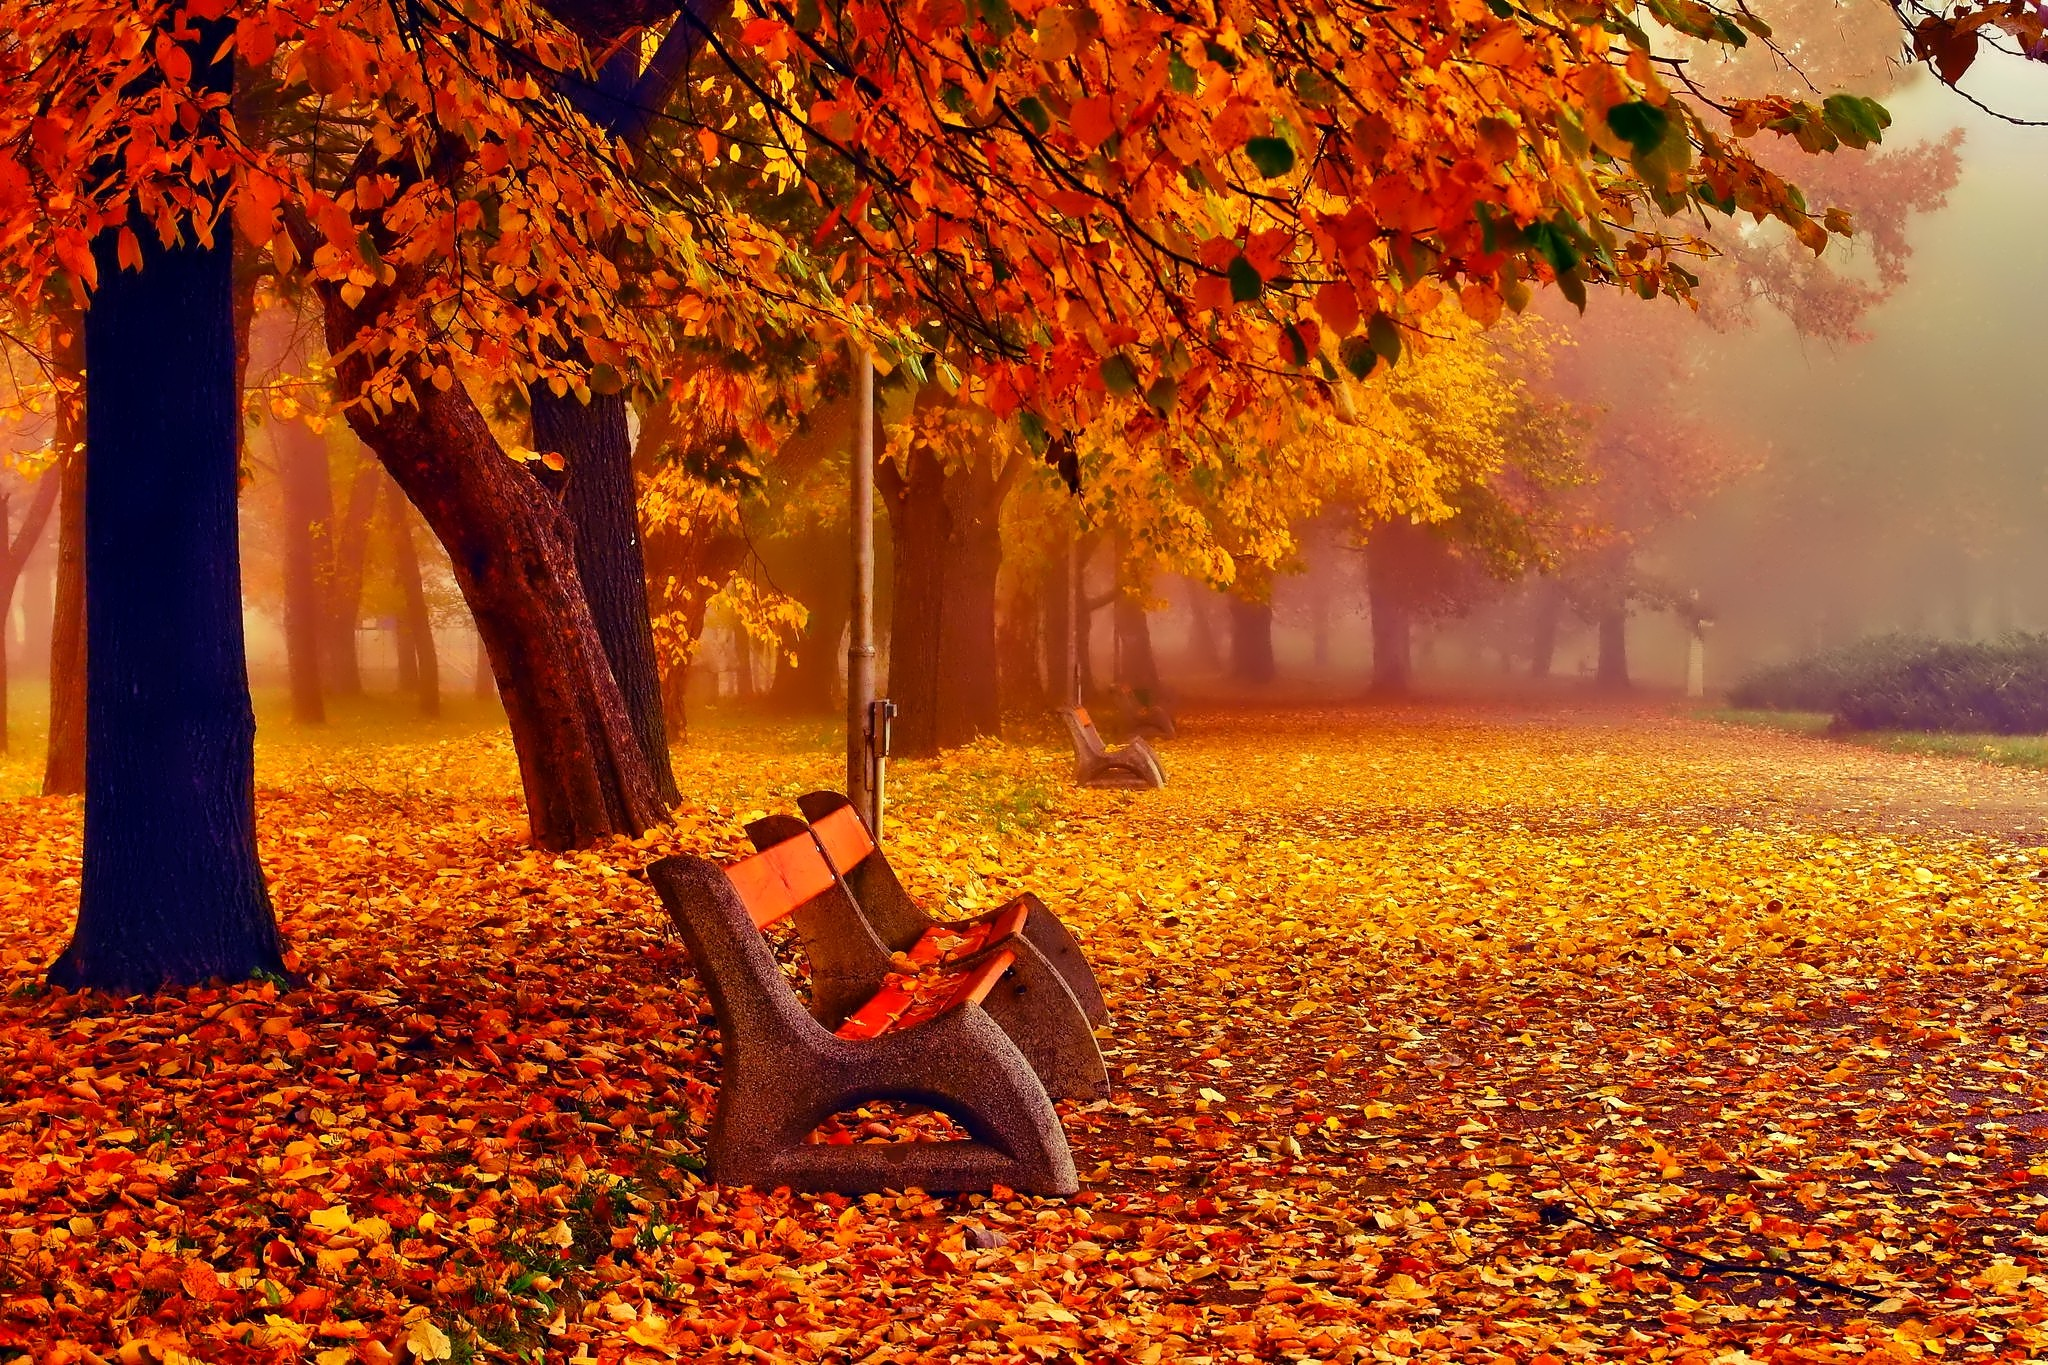 Fall Season Wallpapers For Iphone November Background 183 ① Download Free Awesome High